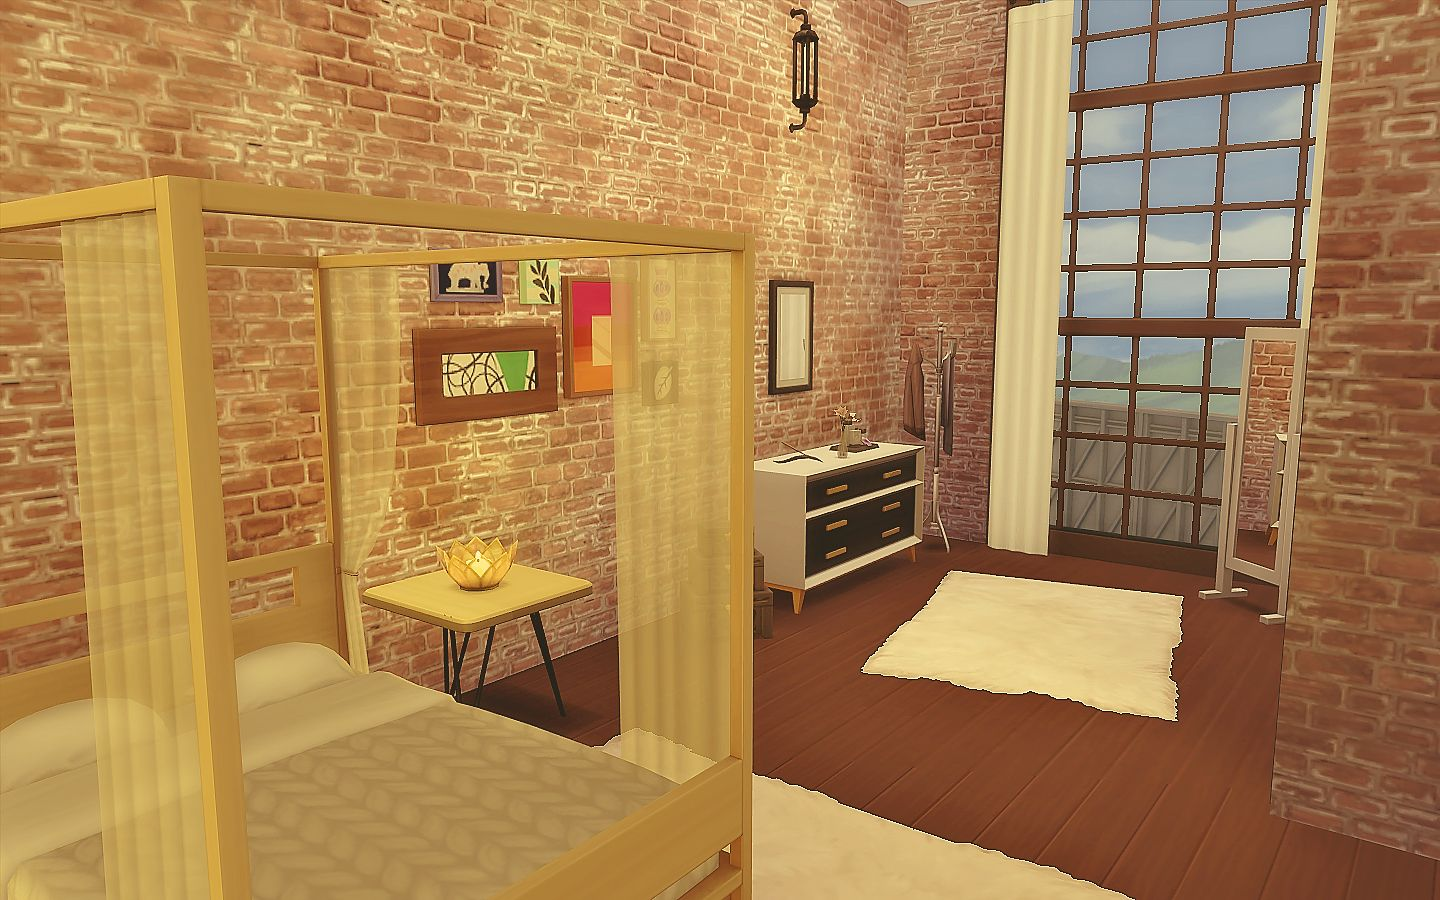 Esszimmer Sims 4 House The Sims 4 Cobertura Penthouse Download Sims